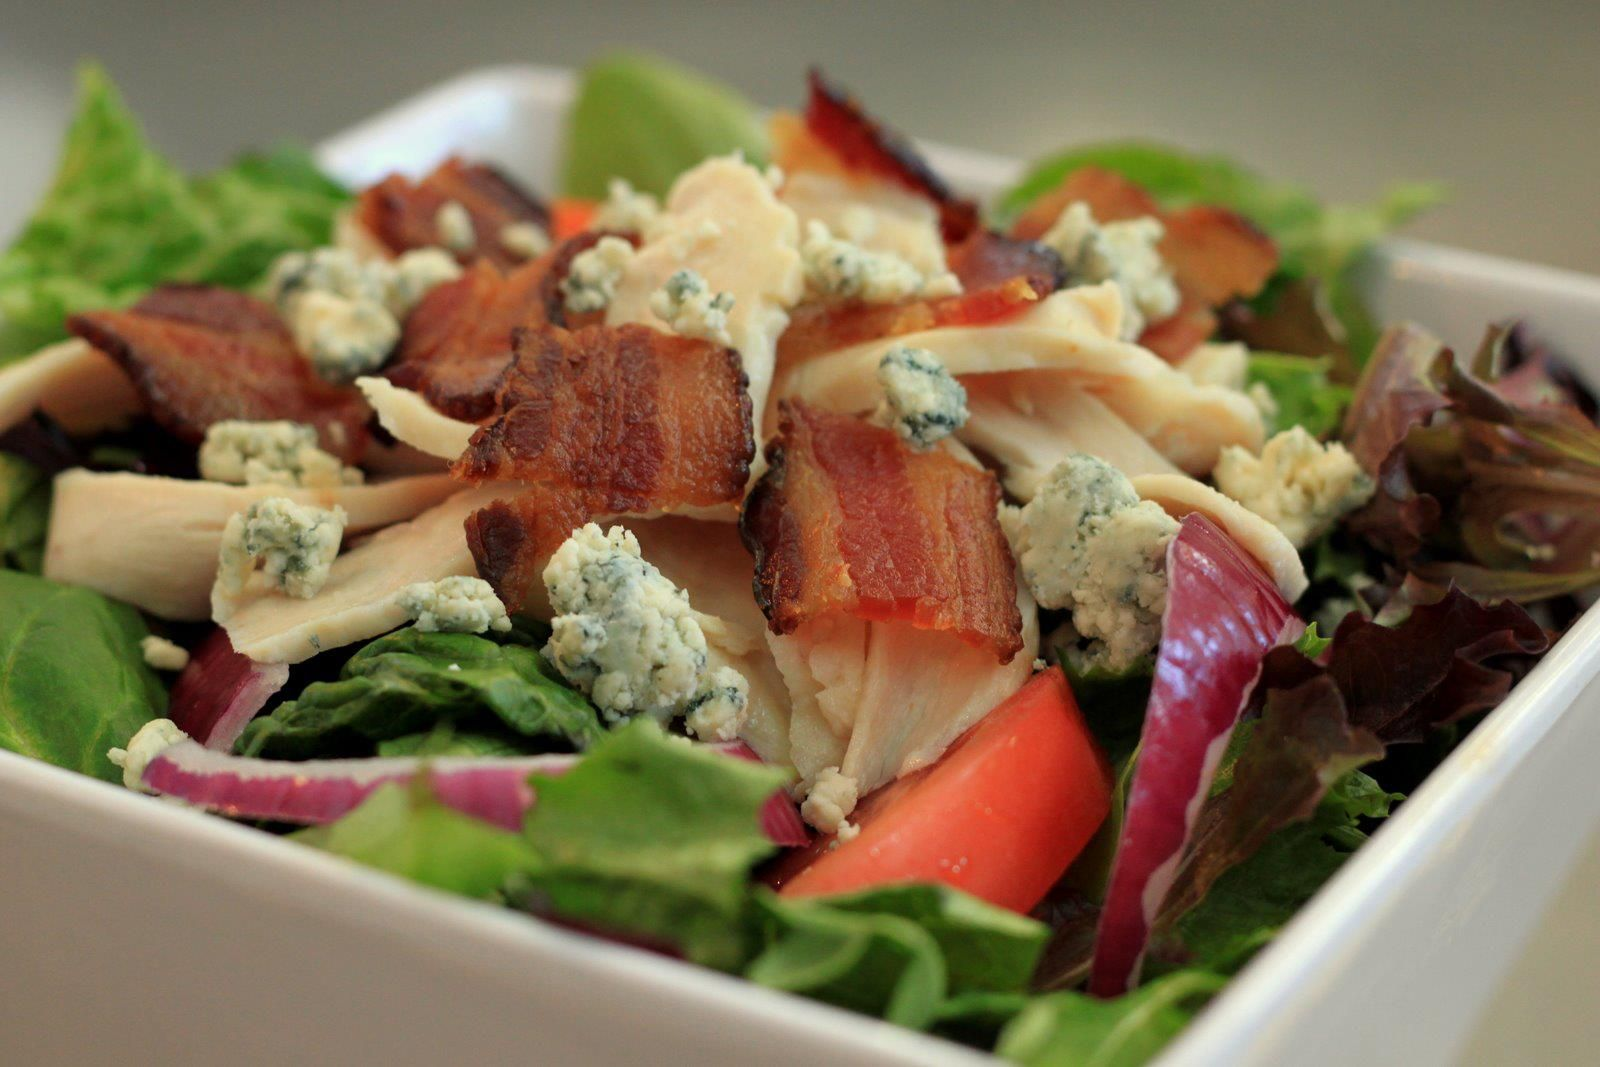 Our Chef's Salad is a wonderful mix of fresh and filling ingredients!